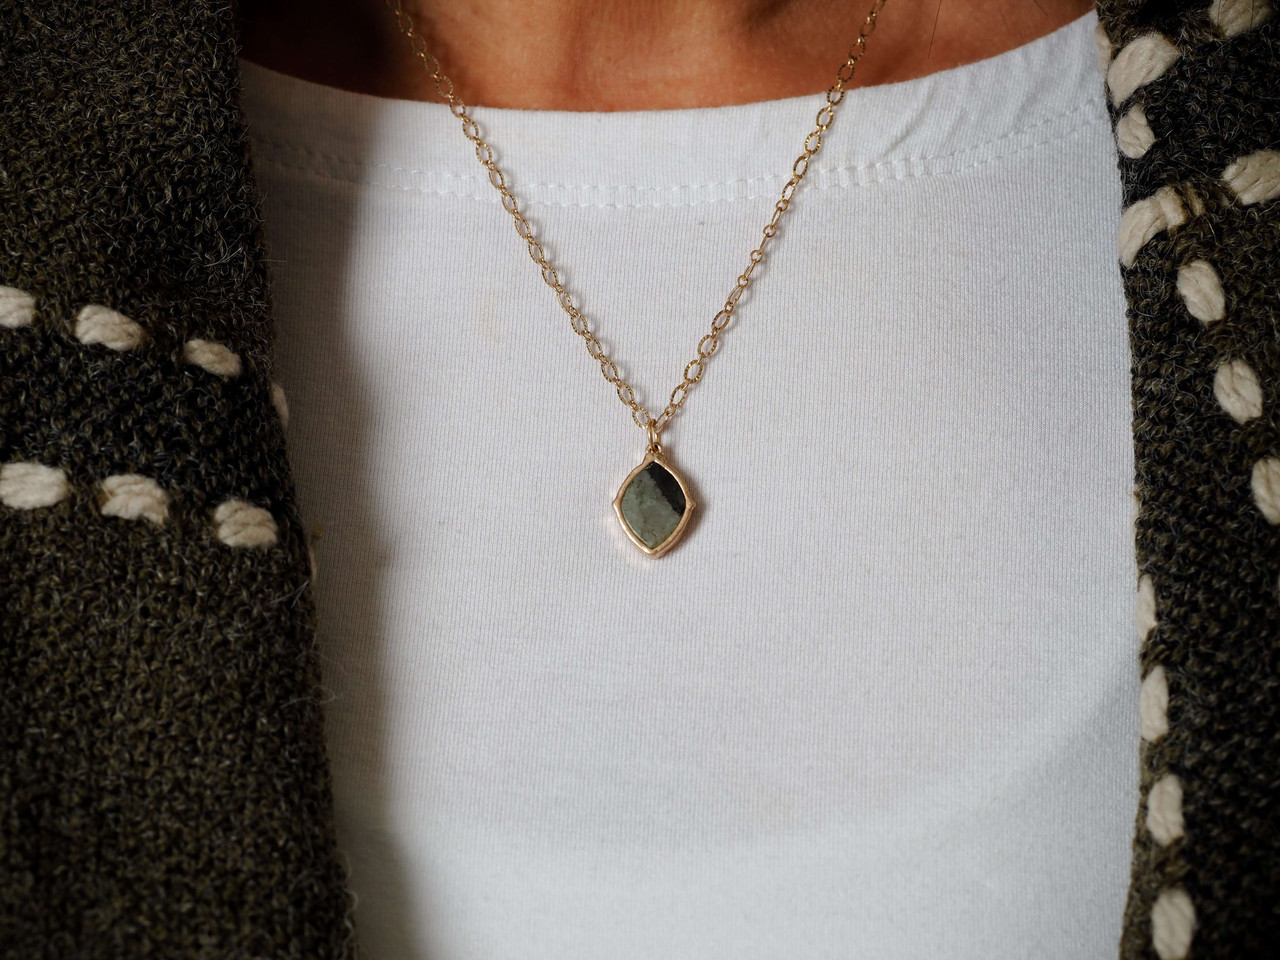 Mini Grey stone pendant gold necklace, Nickle and lead free.